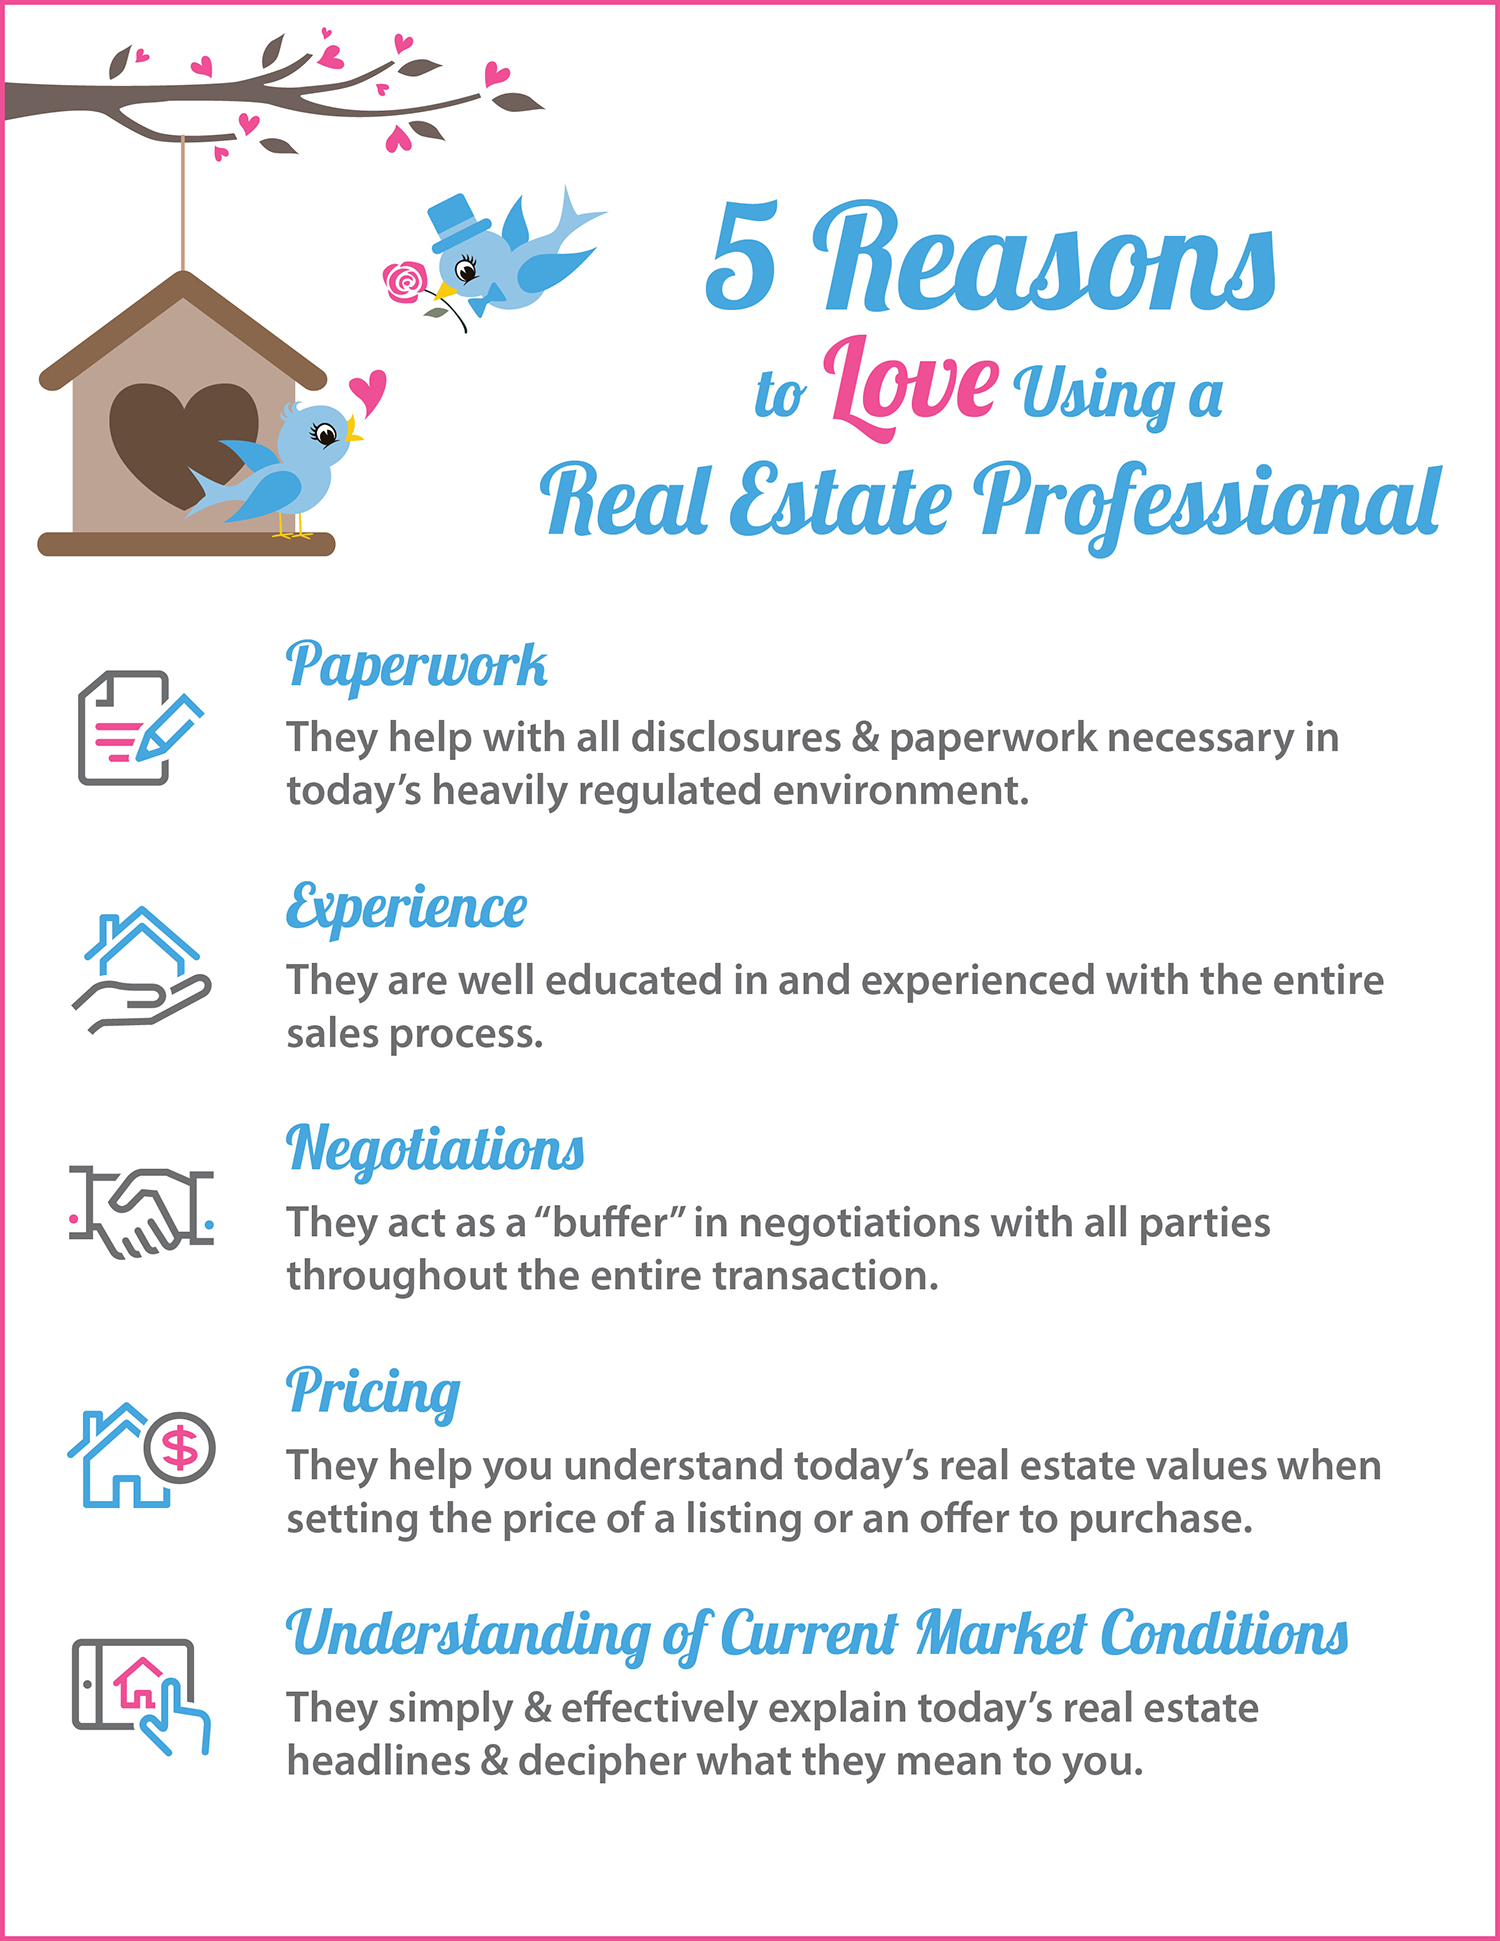 5 Reasons to Love Using a Real Estate Professional | Keeping Current Matters